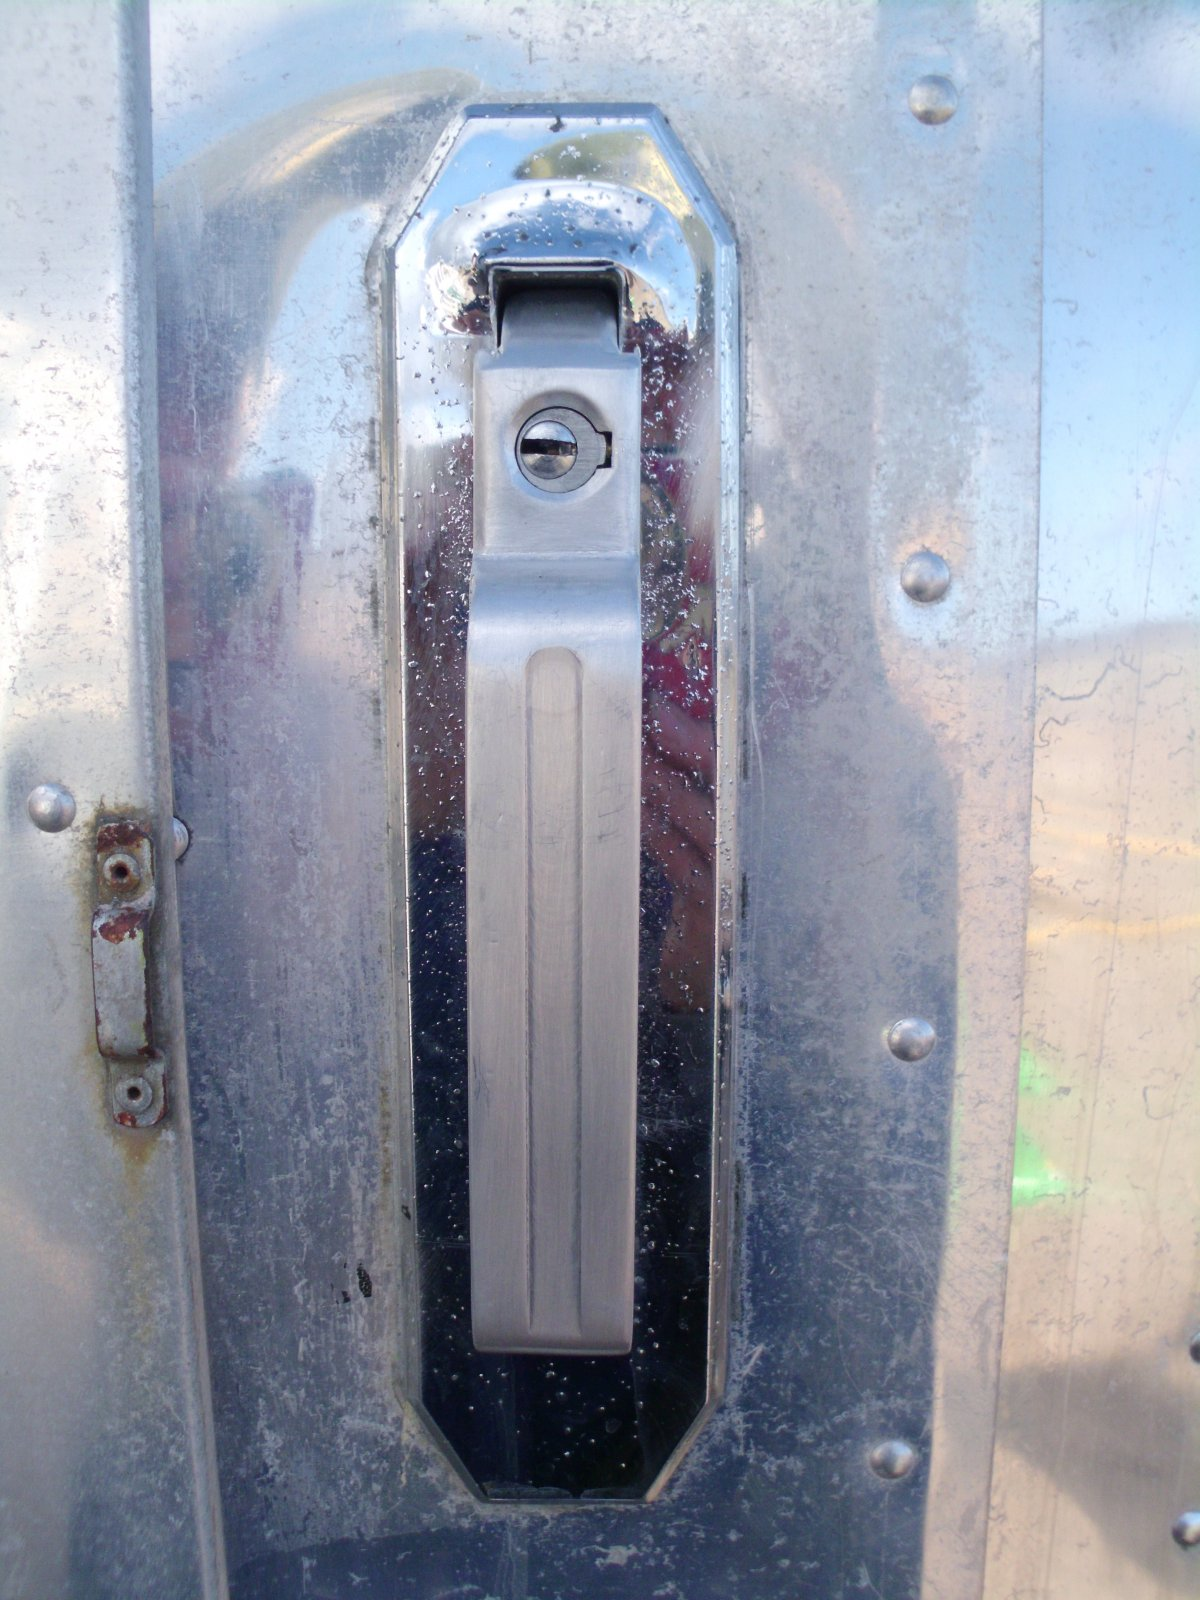 Click image for larger version  Name:airstream 002.jpg Views:104 Size:289.8 KB ID:125572